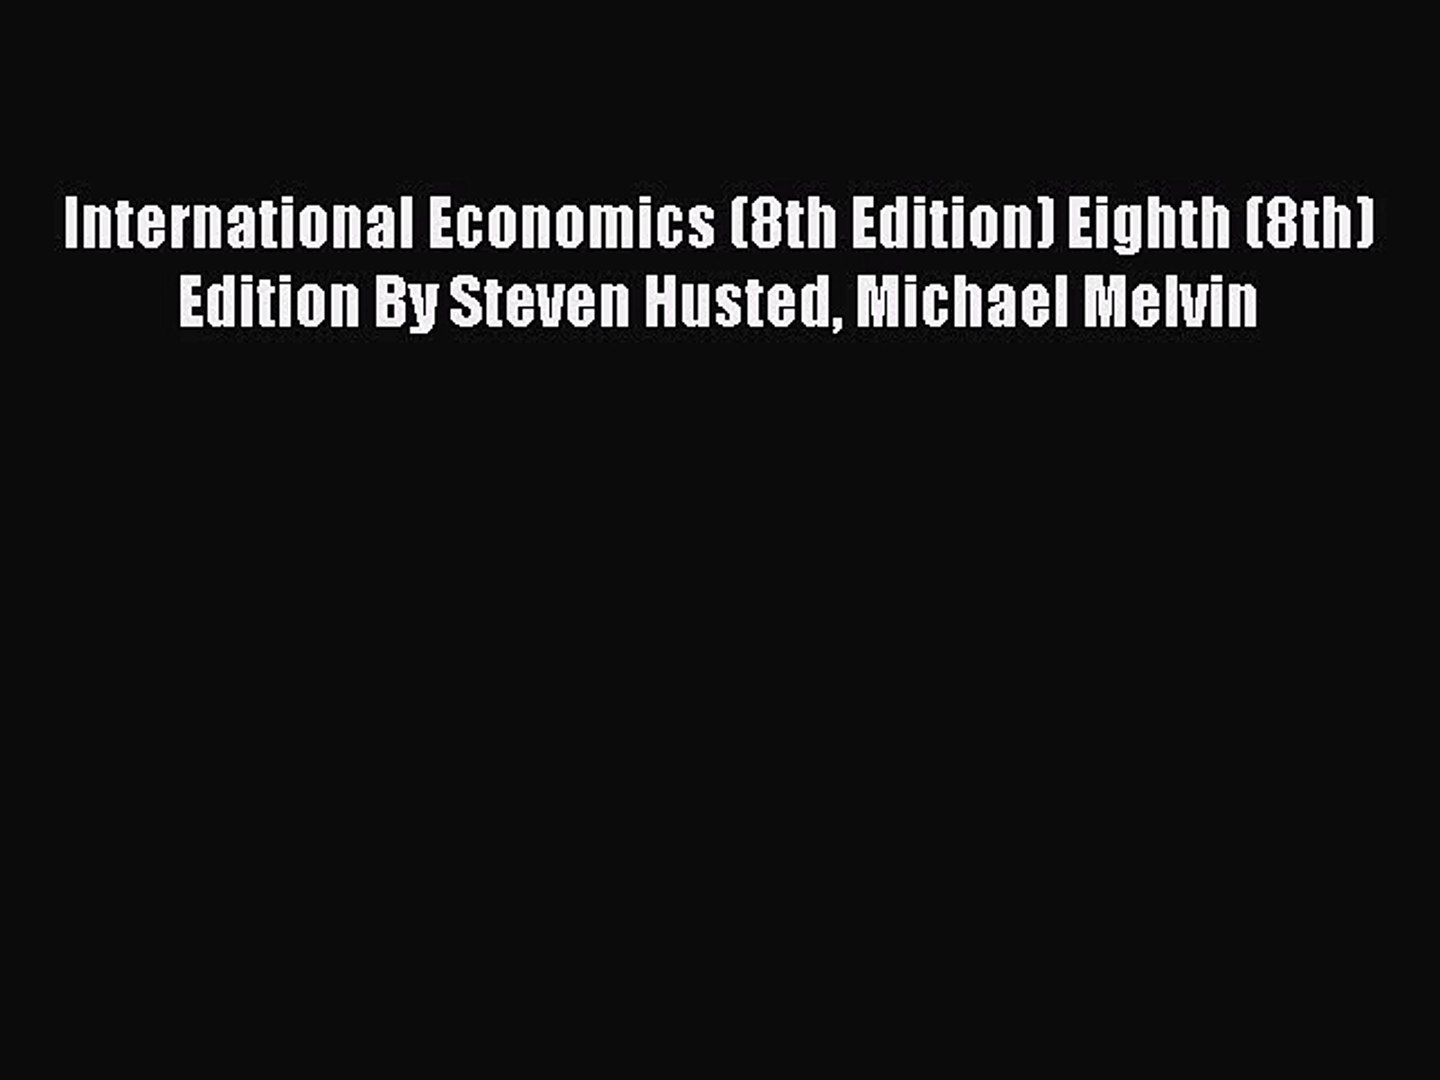 Read International Economics (8th Edition) Eighth (8th) Edition By Steven Husted Michael Melvin